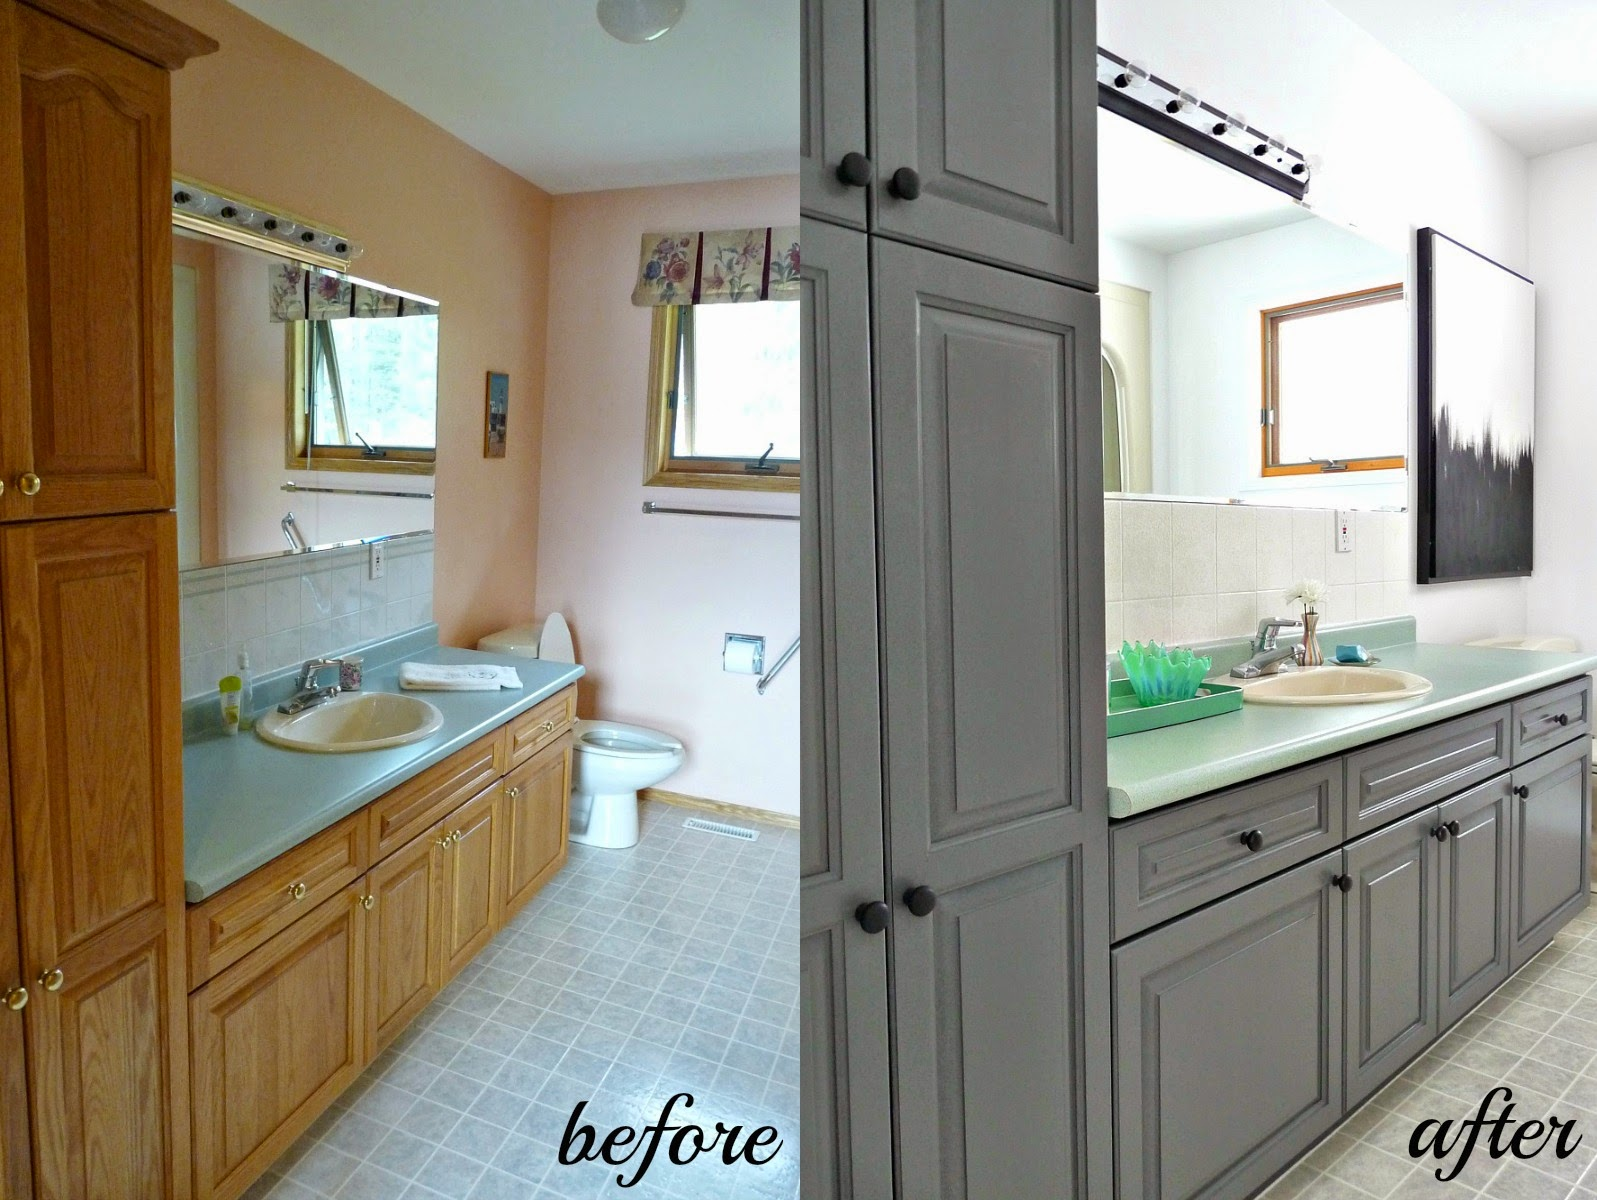 cabinet refinishing paint vs stain vs kitchen cabinet stain Review of Rustoleum Cabinet Transformations System